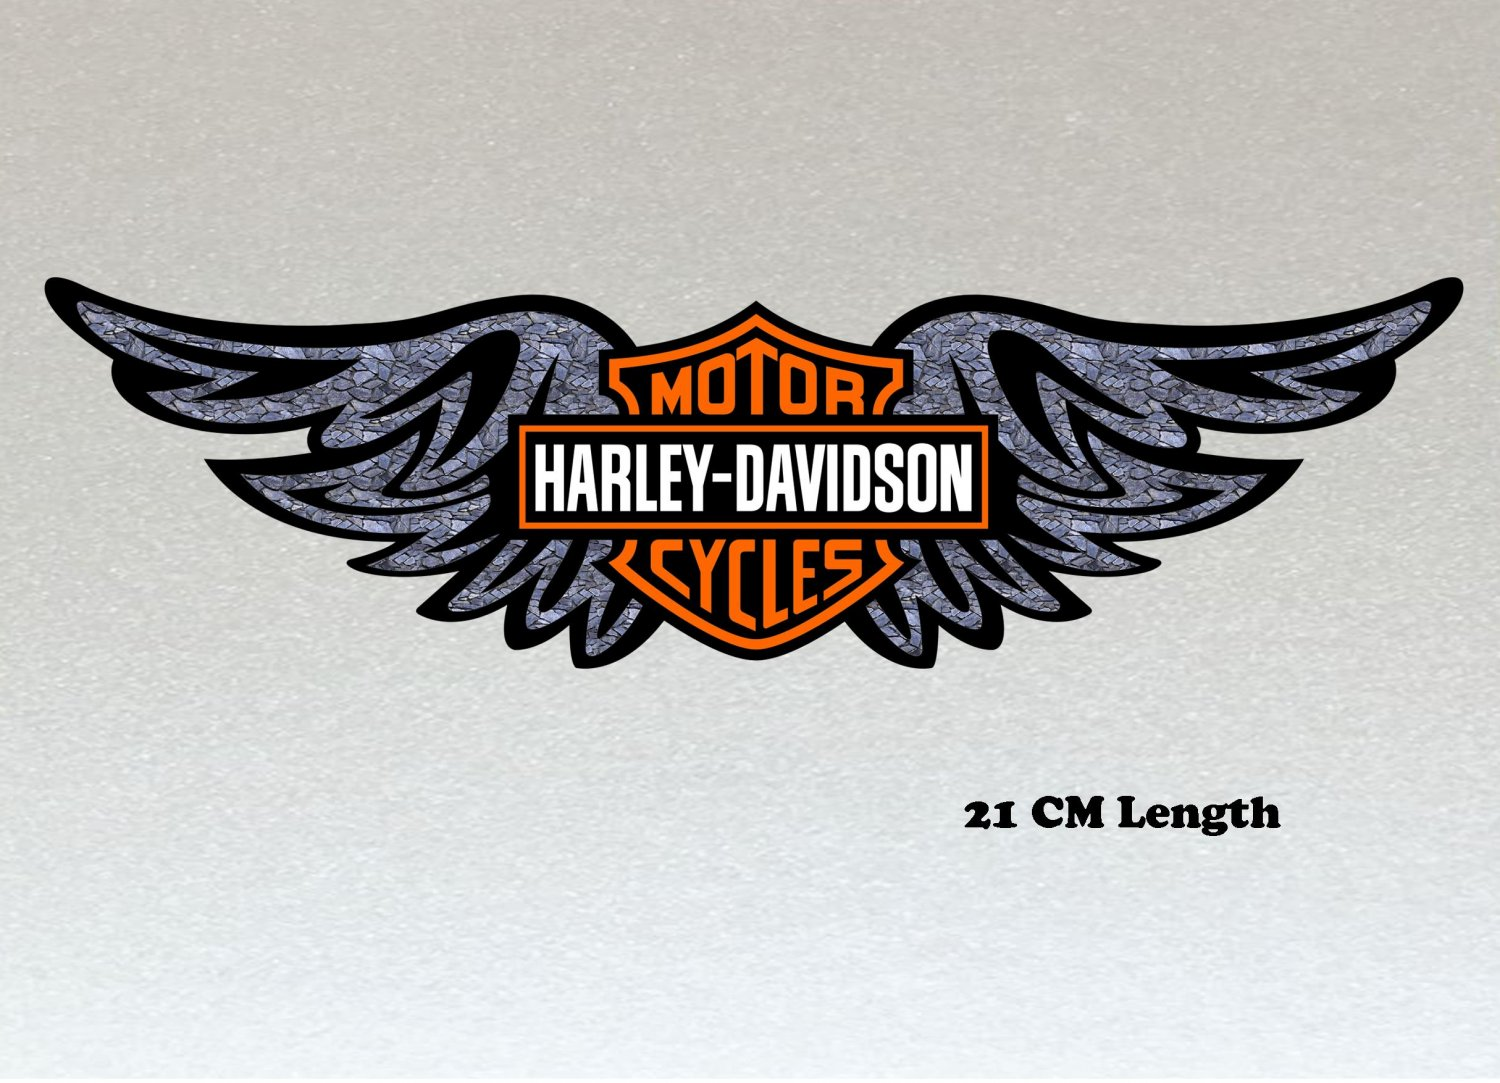 Harley Davidson Wings Large 210mm Orange, Black & White Logo Stickers x 2 Included, Laminated